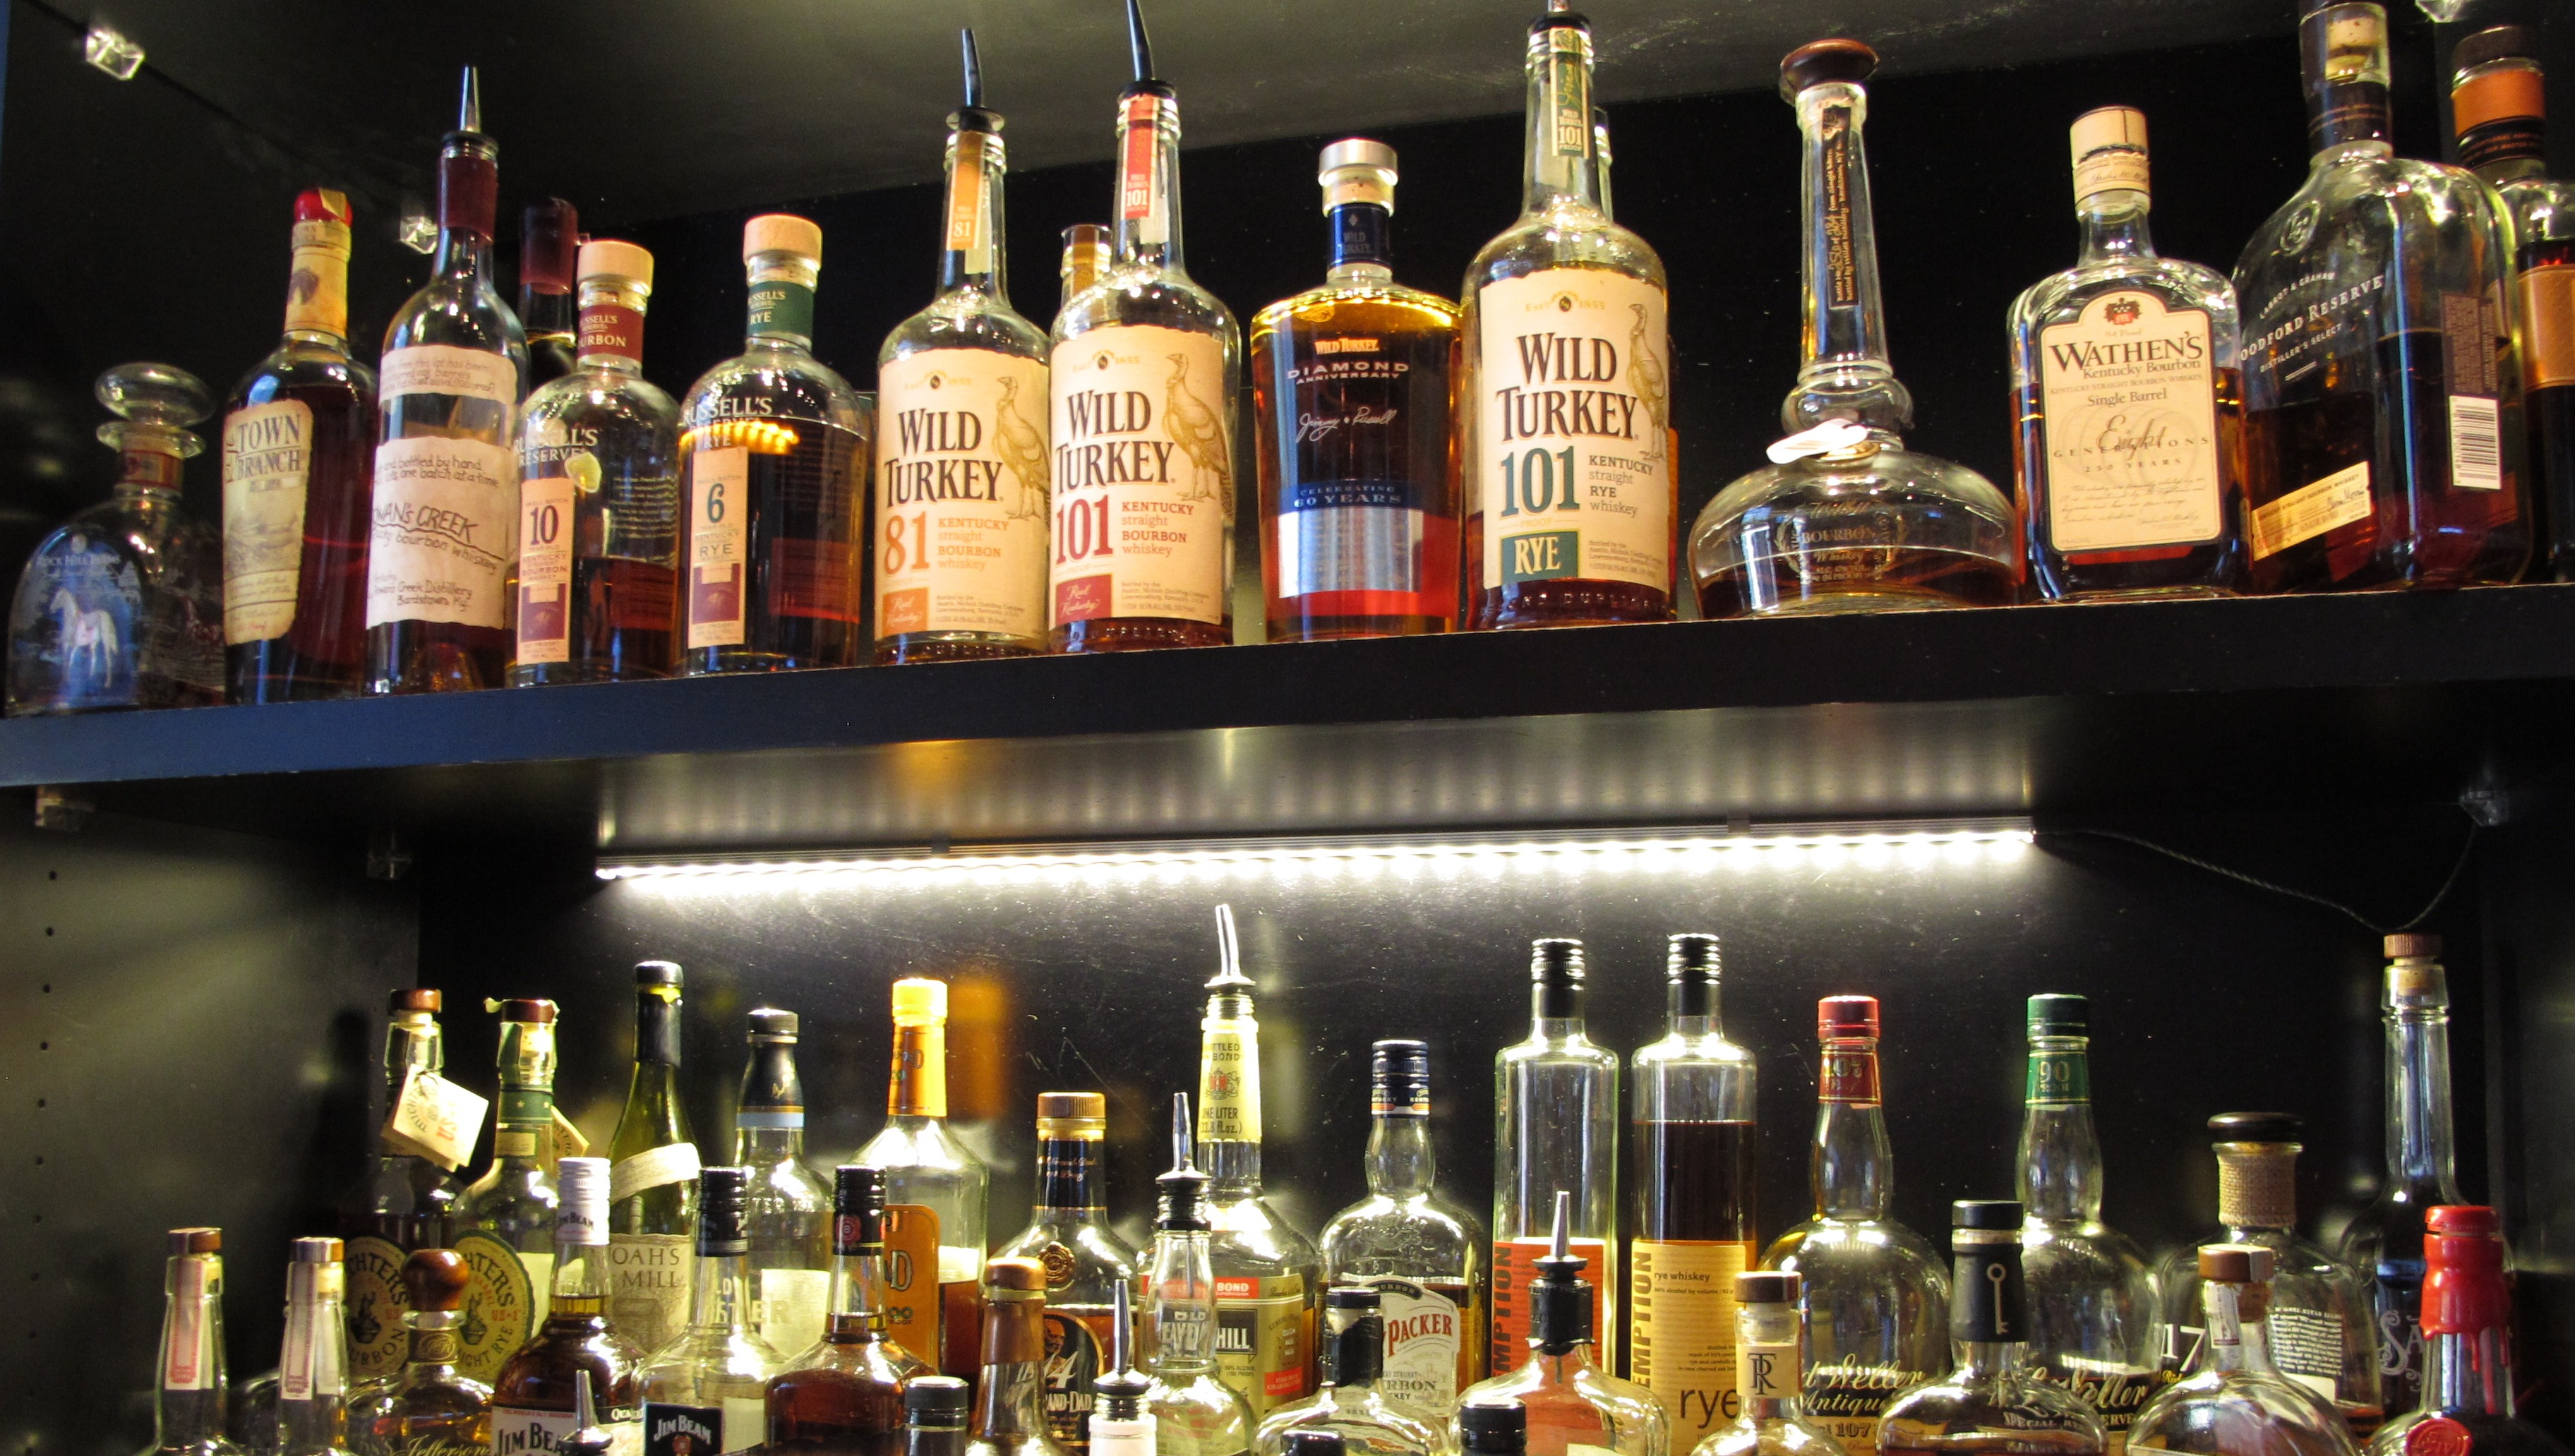 This Sept. 5, 2014 photo shows Sidebar at Whiskey Row, a bar that offers more than 100 bourbons, in the heart of downtown Louisville, Ky. Restaurants along the city's Urban Bourbon Trail are routinely stocked with 50 to 150 varieties of Kentucky's signature spirit. (AP Photo/Bruce Schreiner)